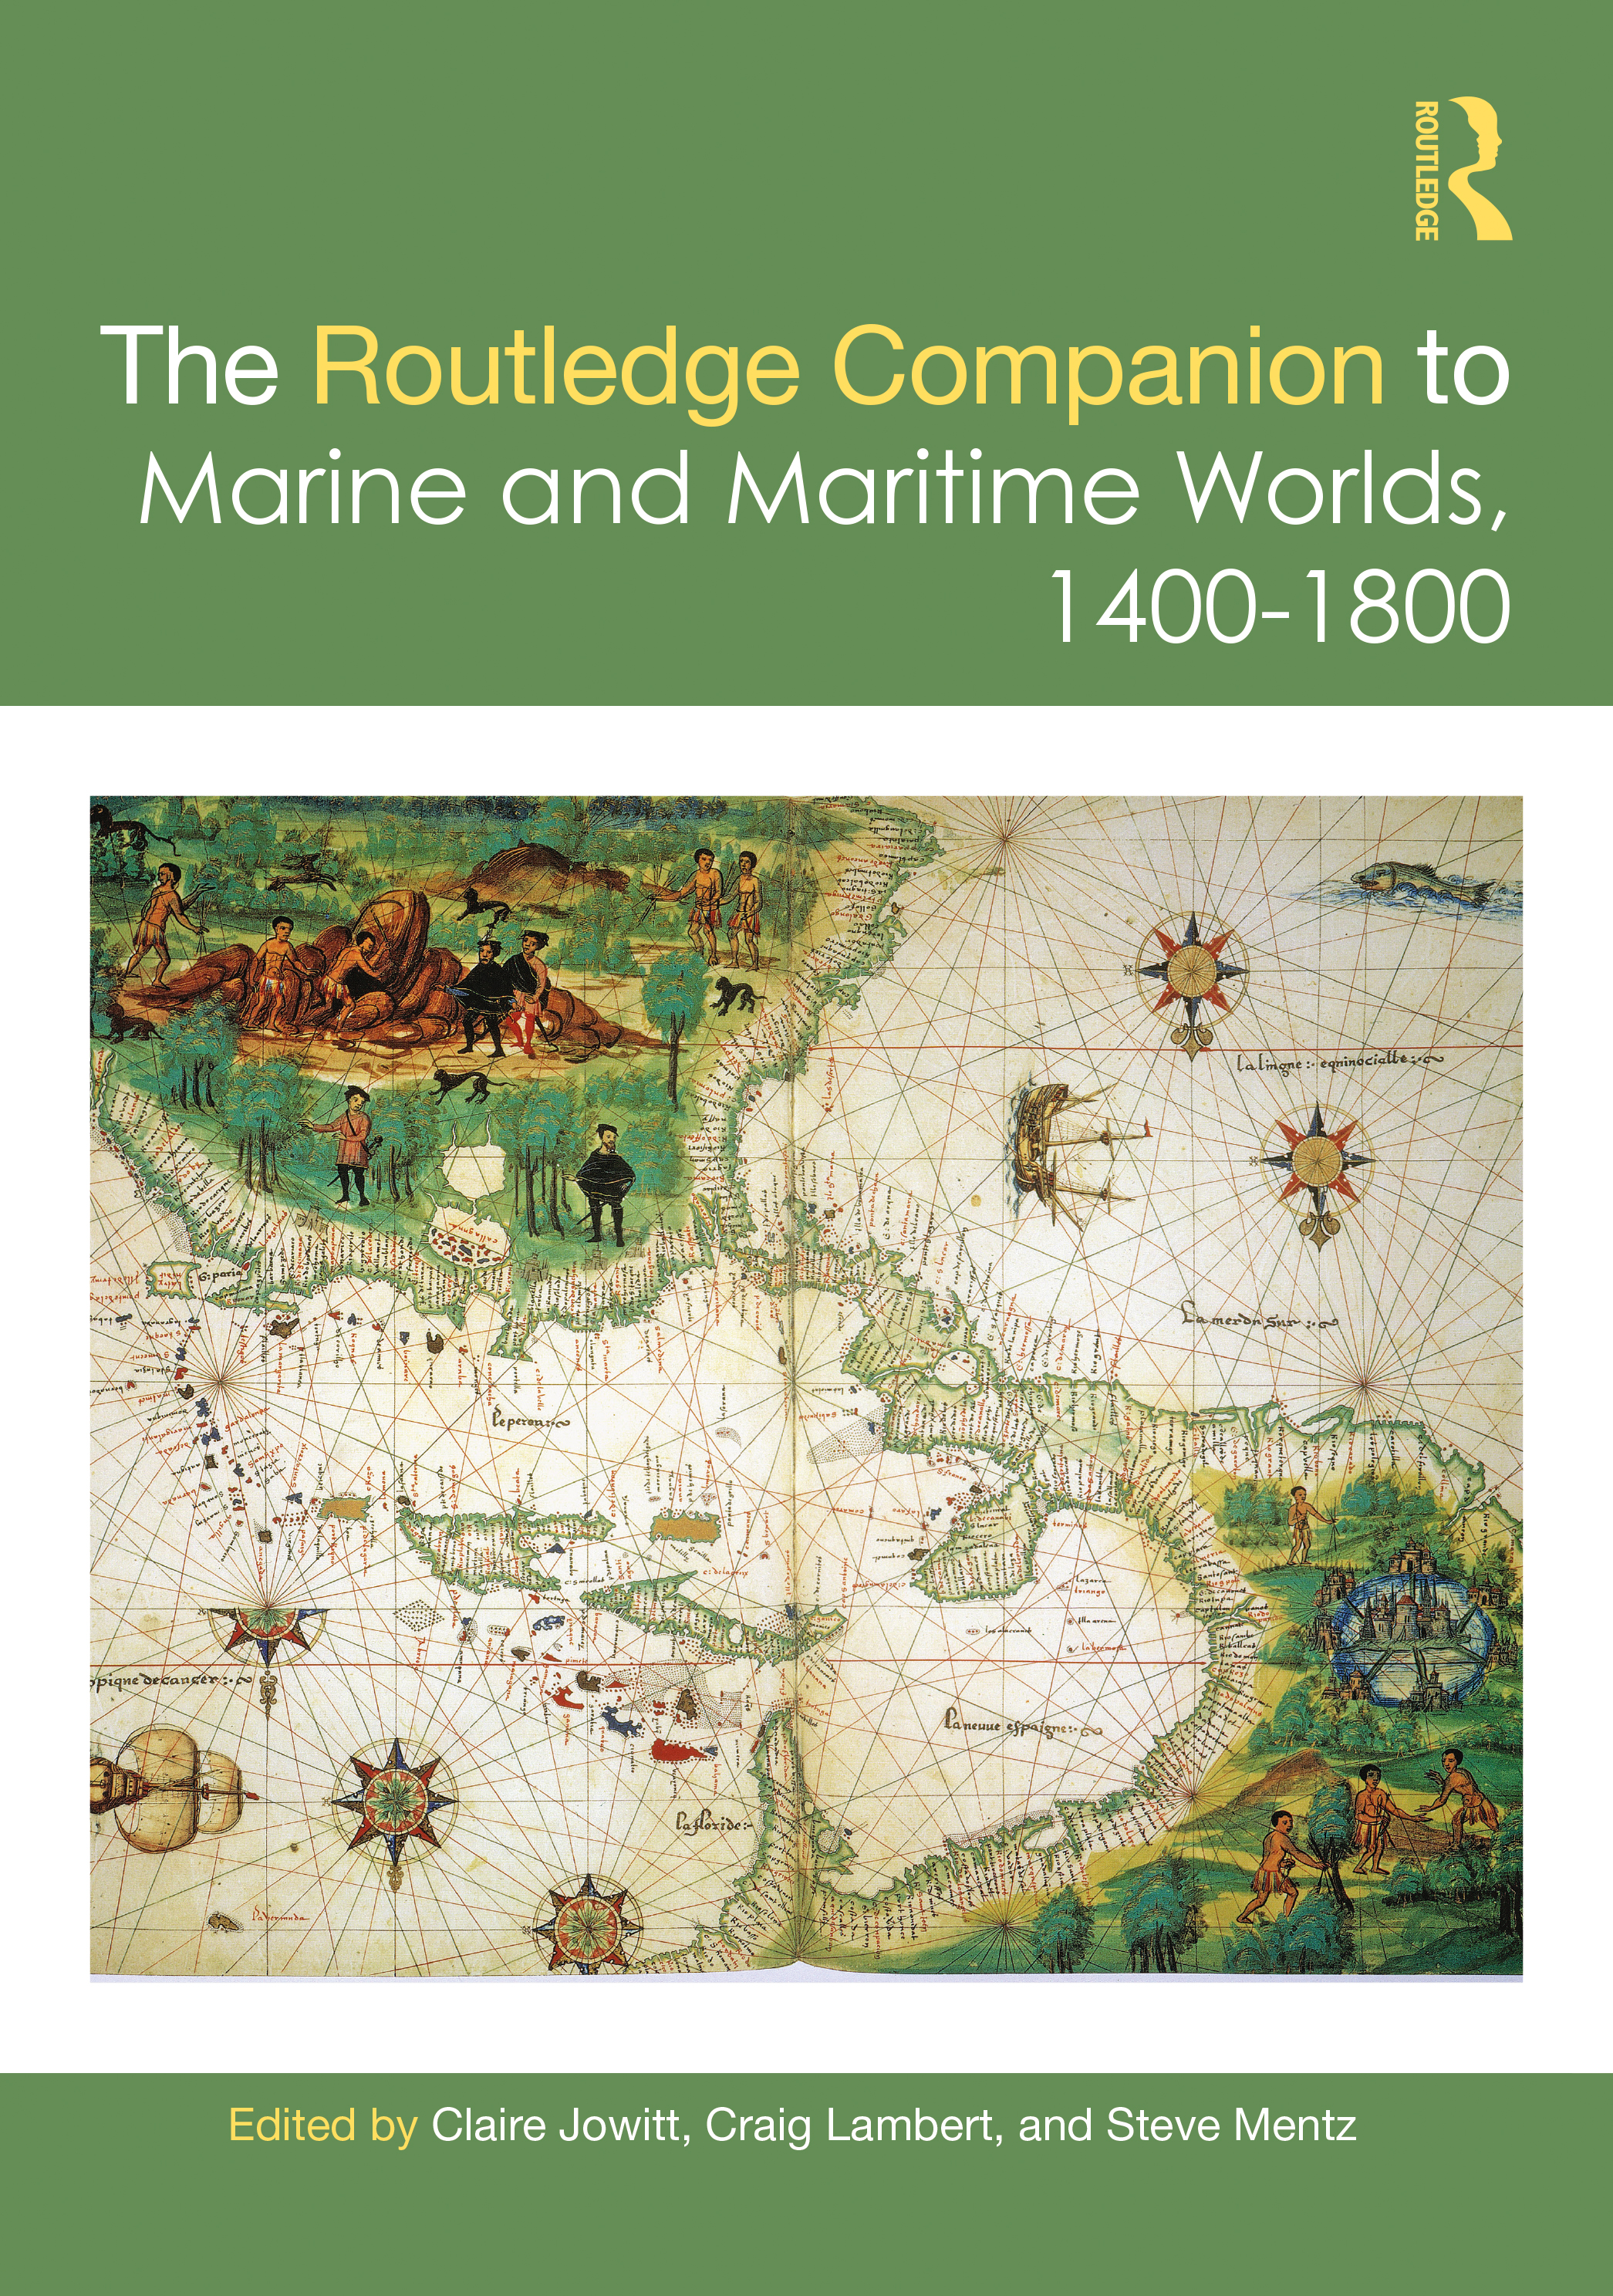 The Routledge Companion to Marine and Maritime Worlds 1400-1800: 1st Edition (Hardback) book cover